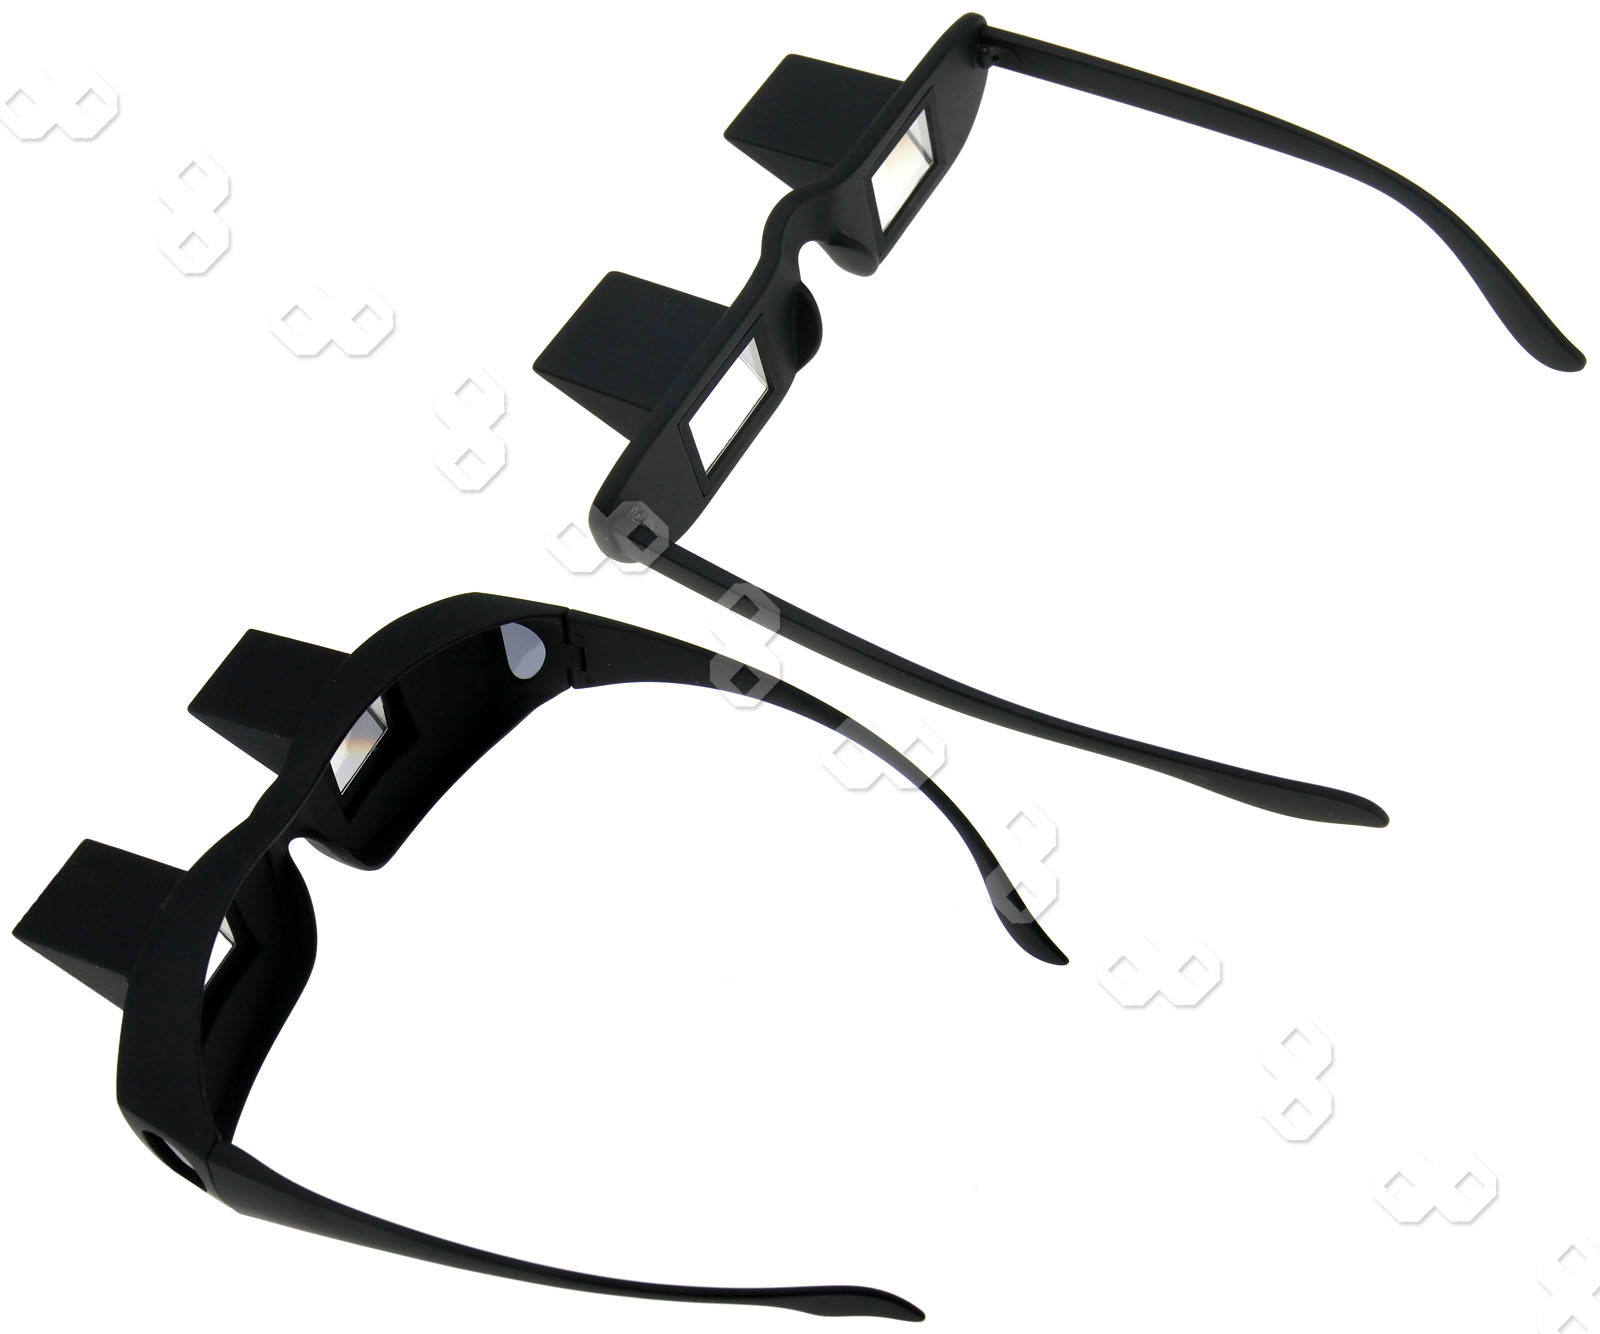 a18ffa3f8c Details about Lazy Lying Down Bed Reading Watching Horizontal Prism Angled  Glasses